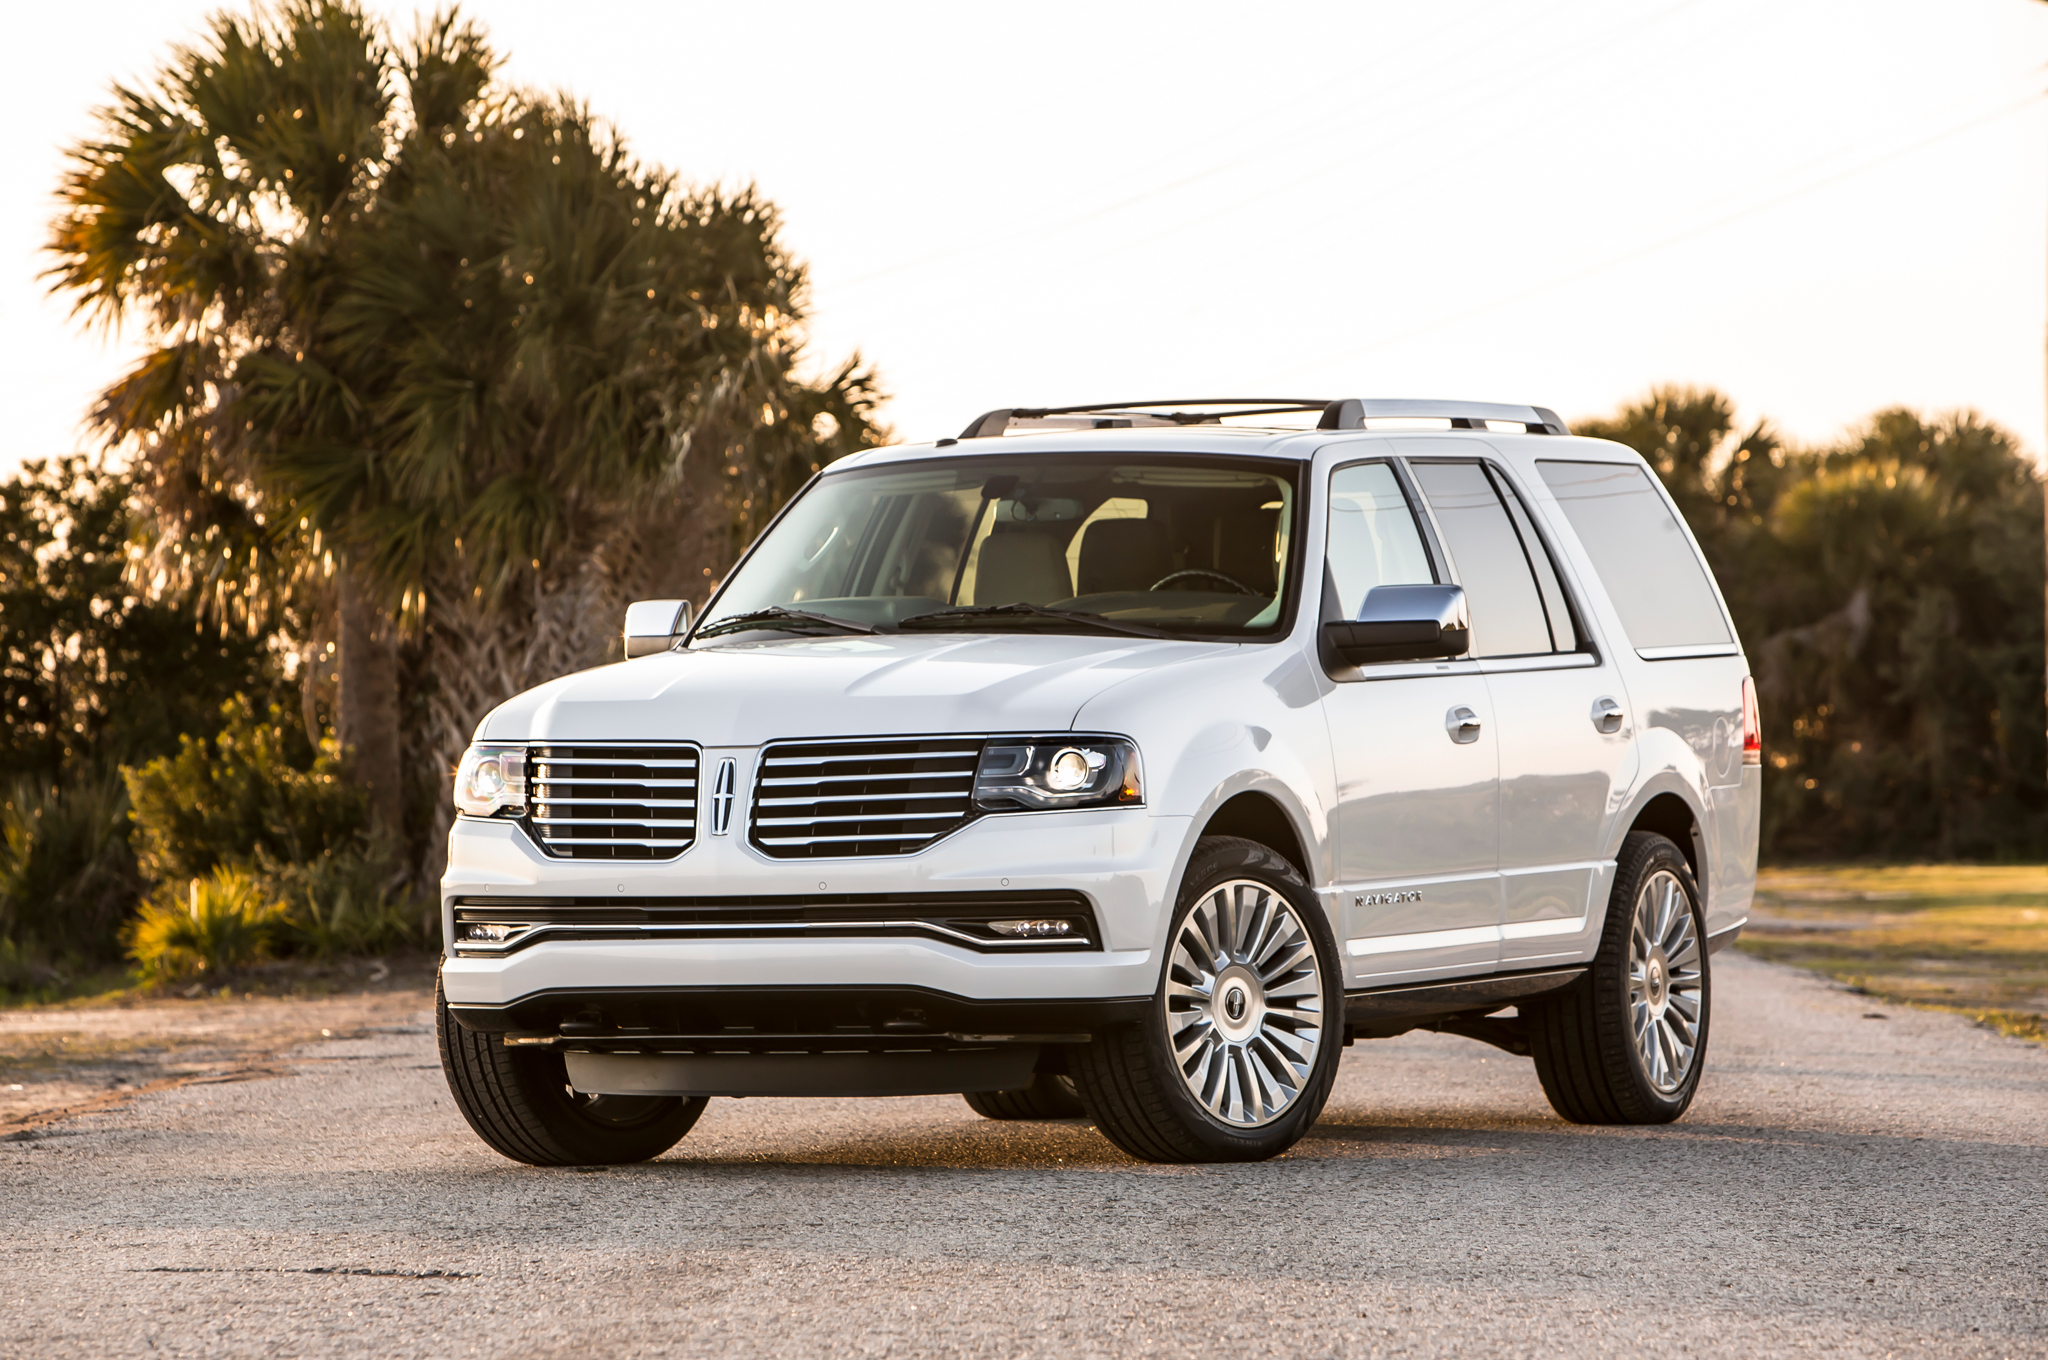 2015 Lincoln Navigator Exterior Overview